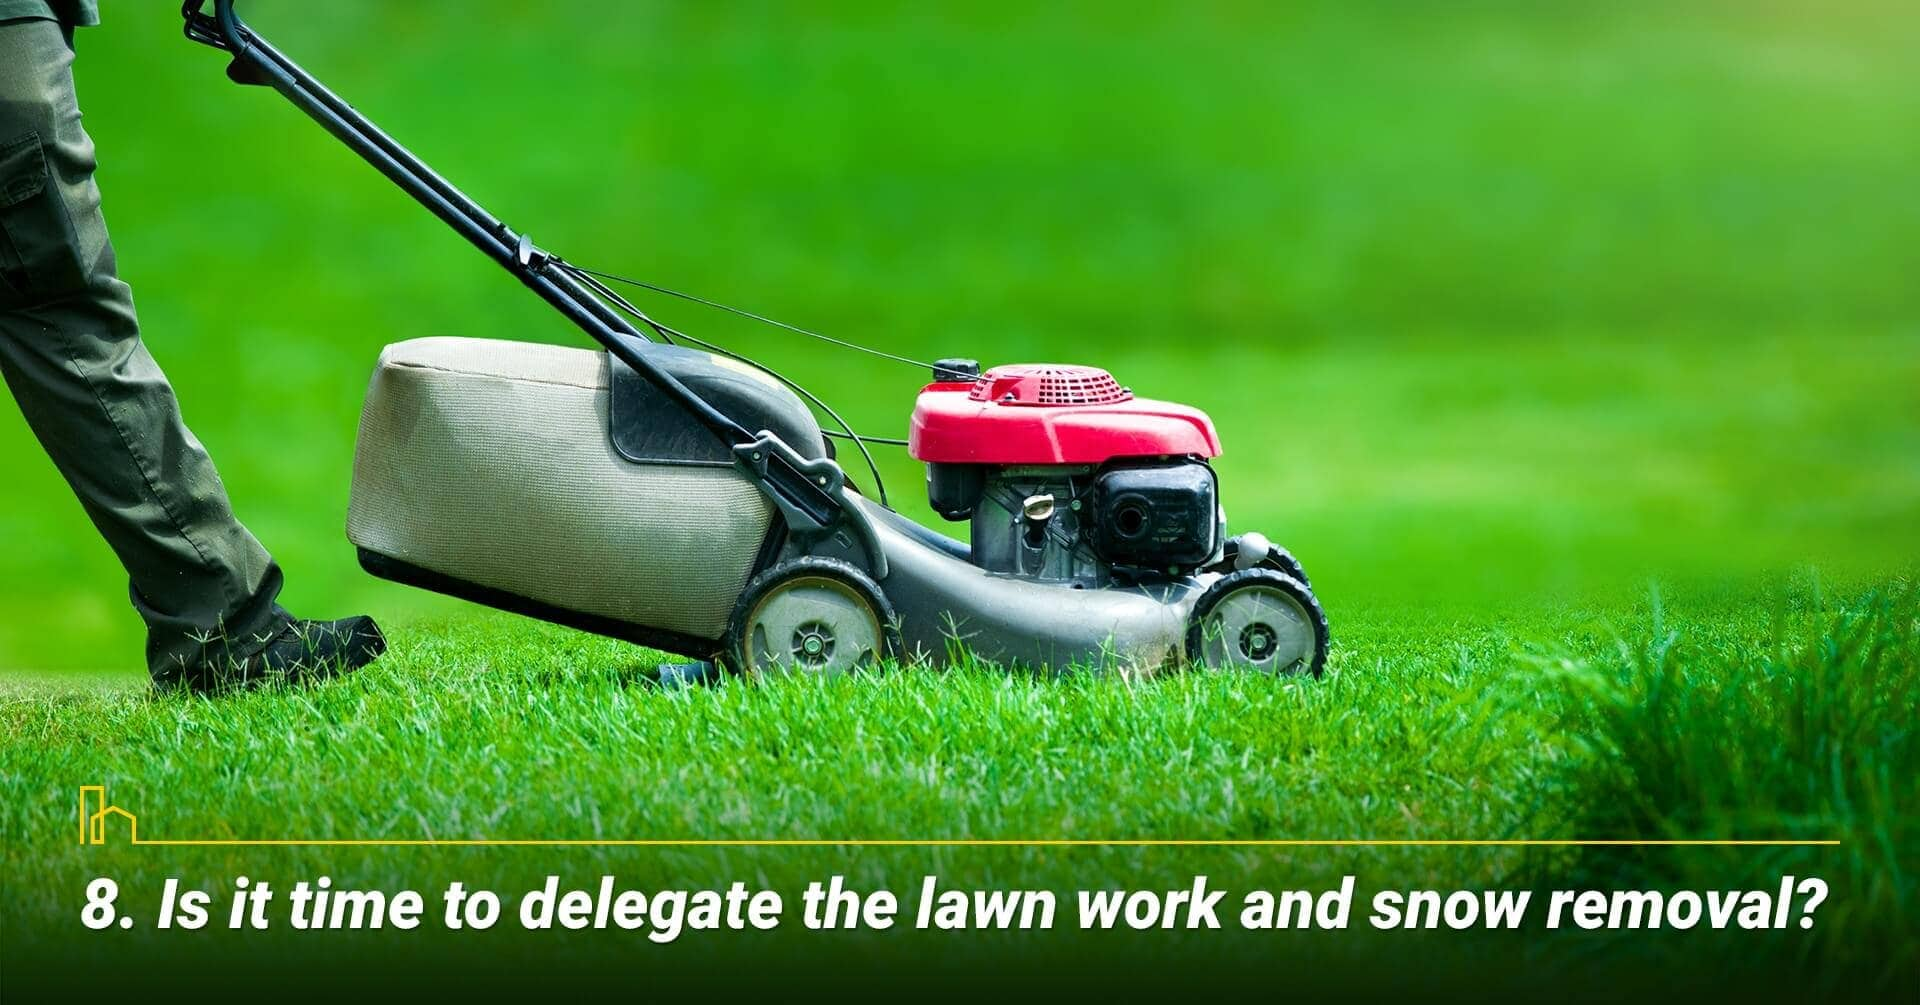 Is it time to delegate the lawn work and snow removal?